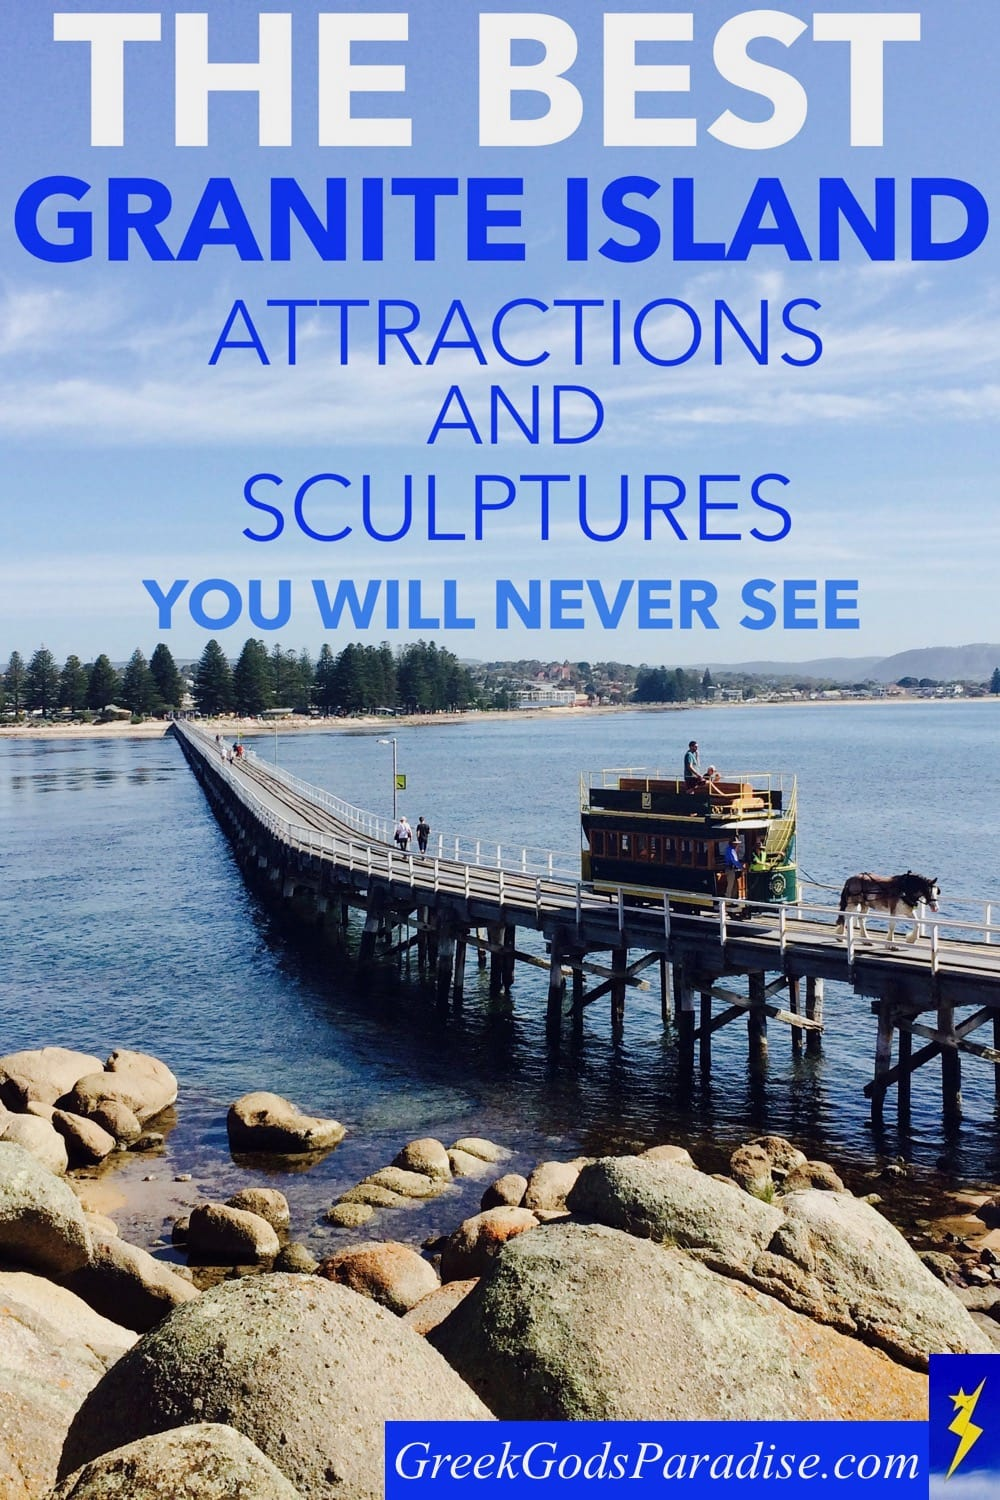 The Best Granite Island Attractions and Sculptures